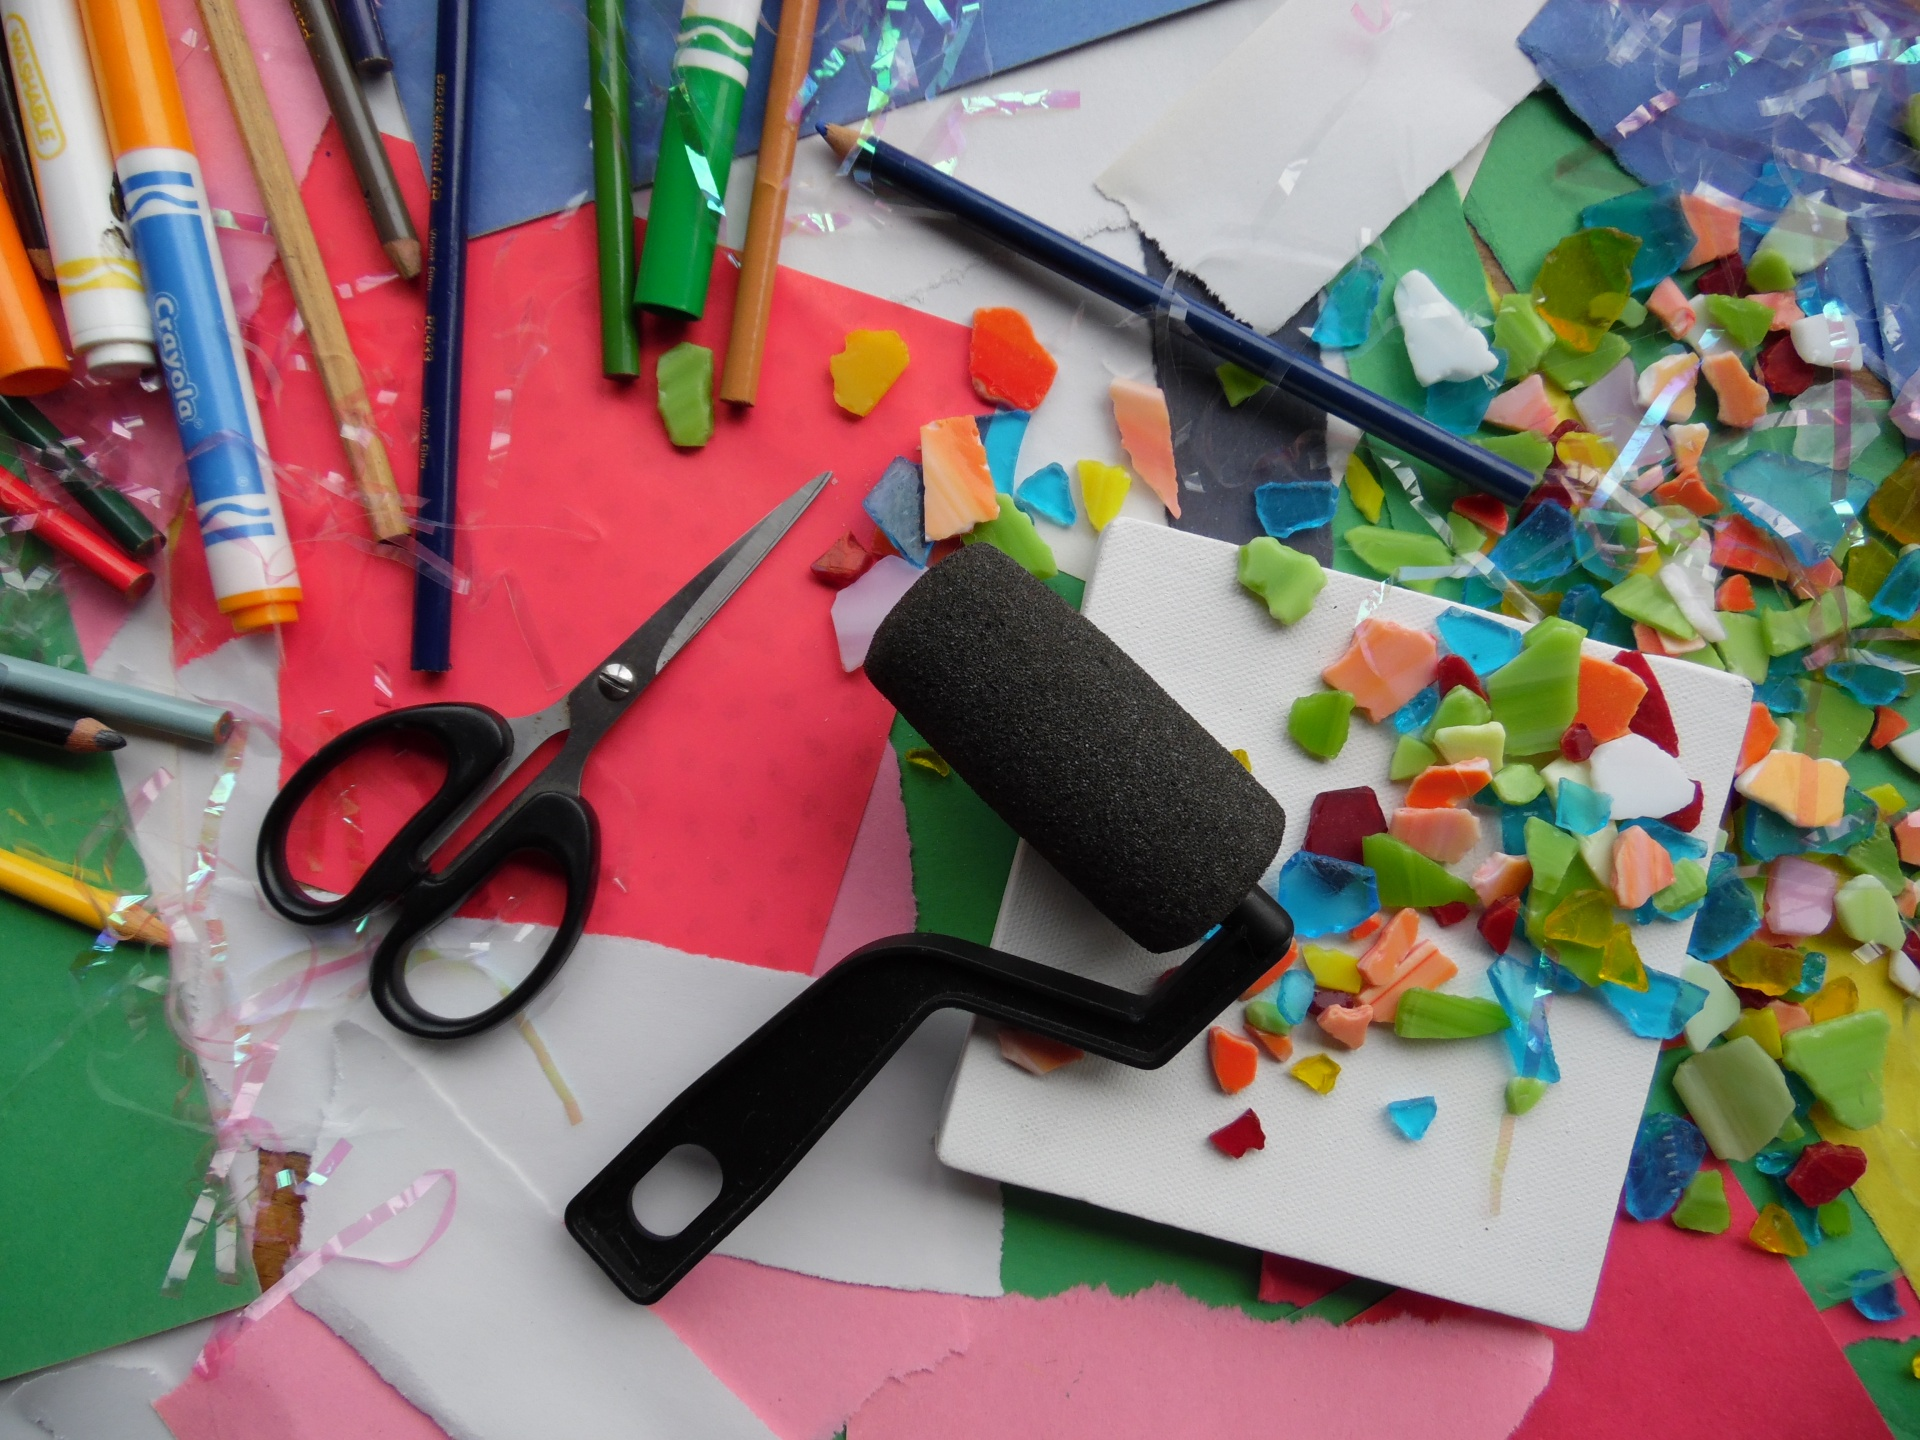 Arts And Crafts Supplies Free Stock Photo  Public Domain Pictures